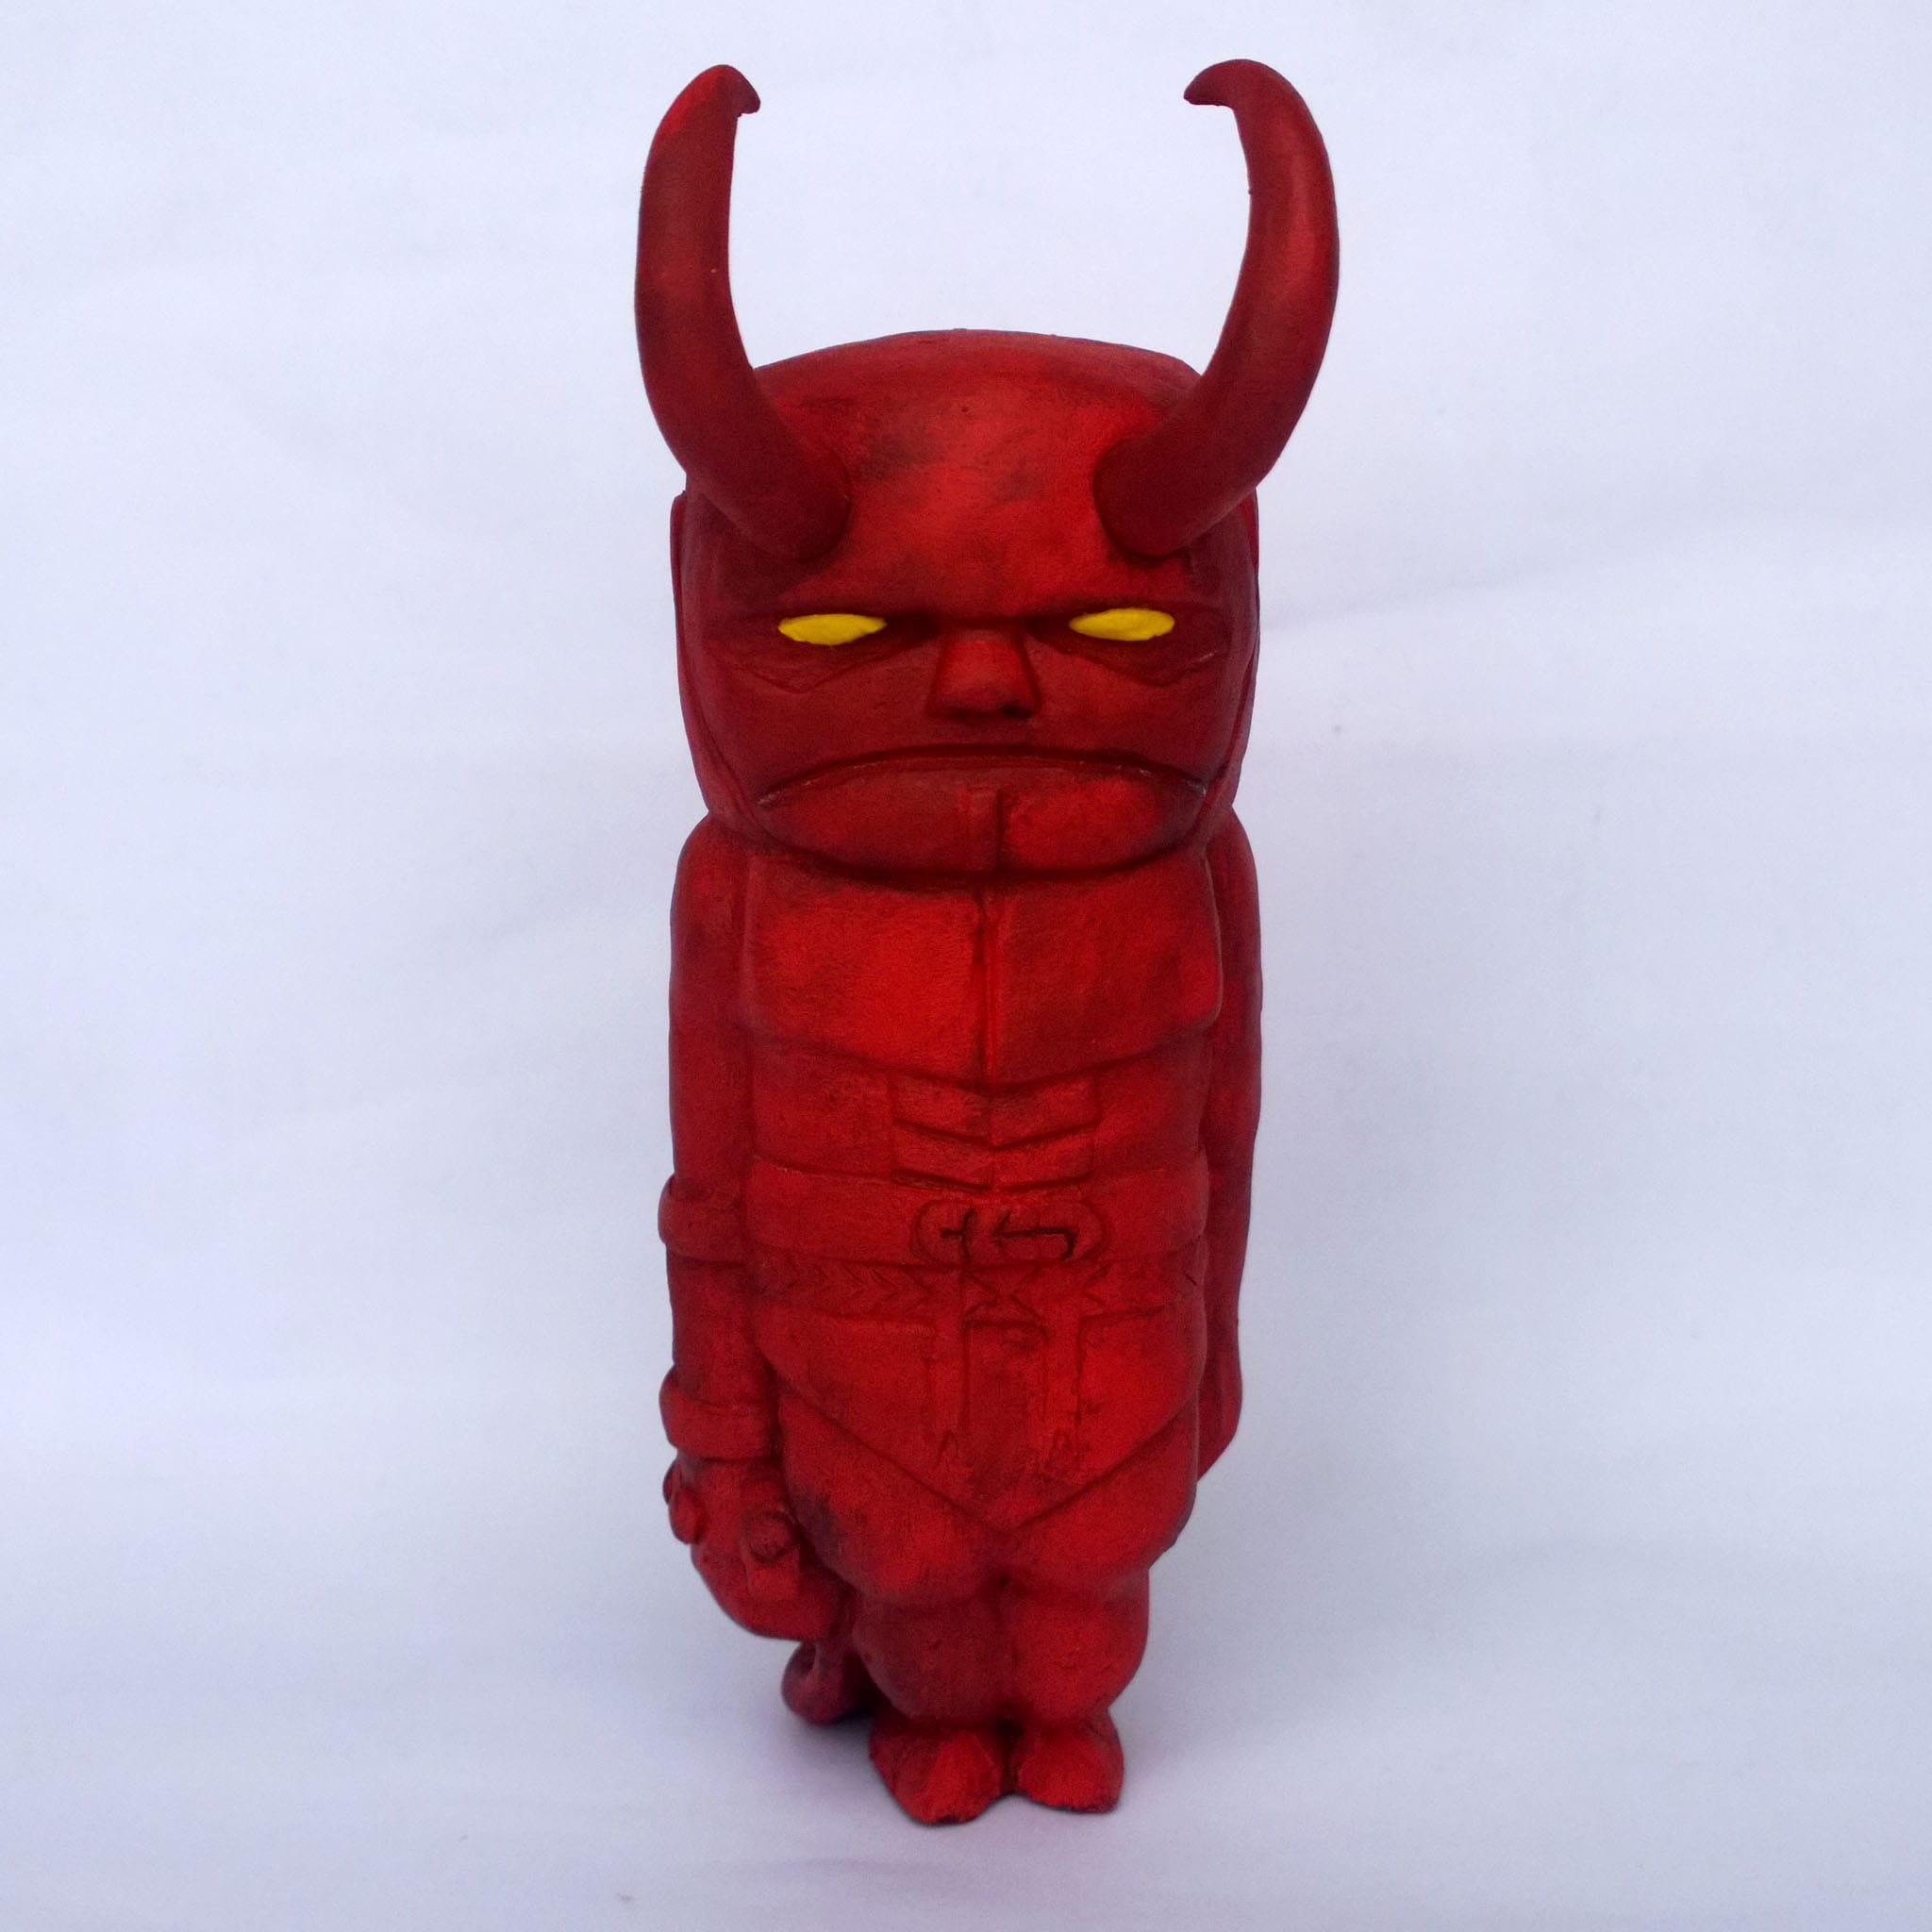 Hellboy Camote Toys Resin Toy Art Toy